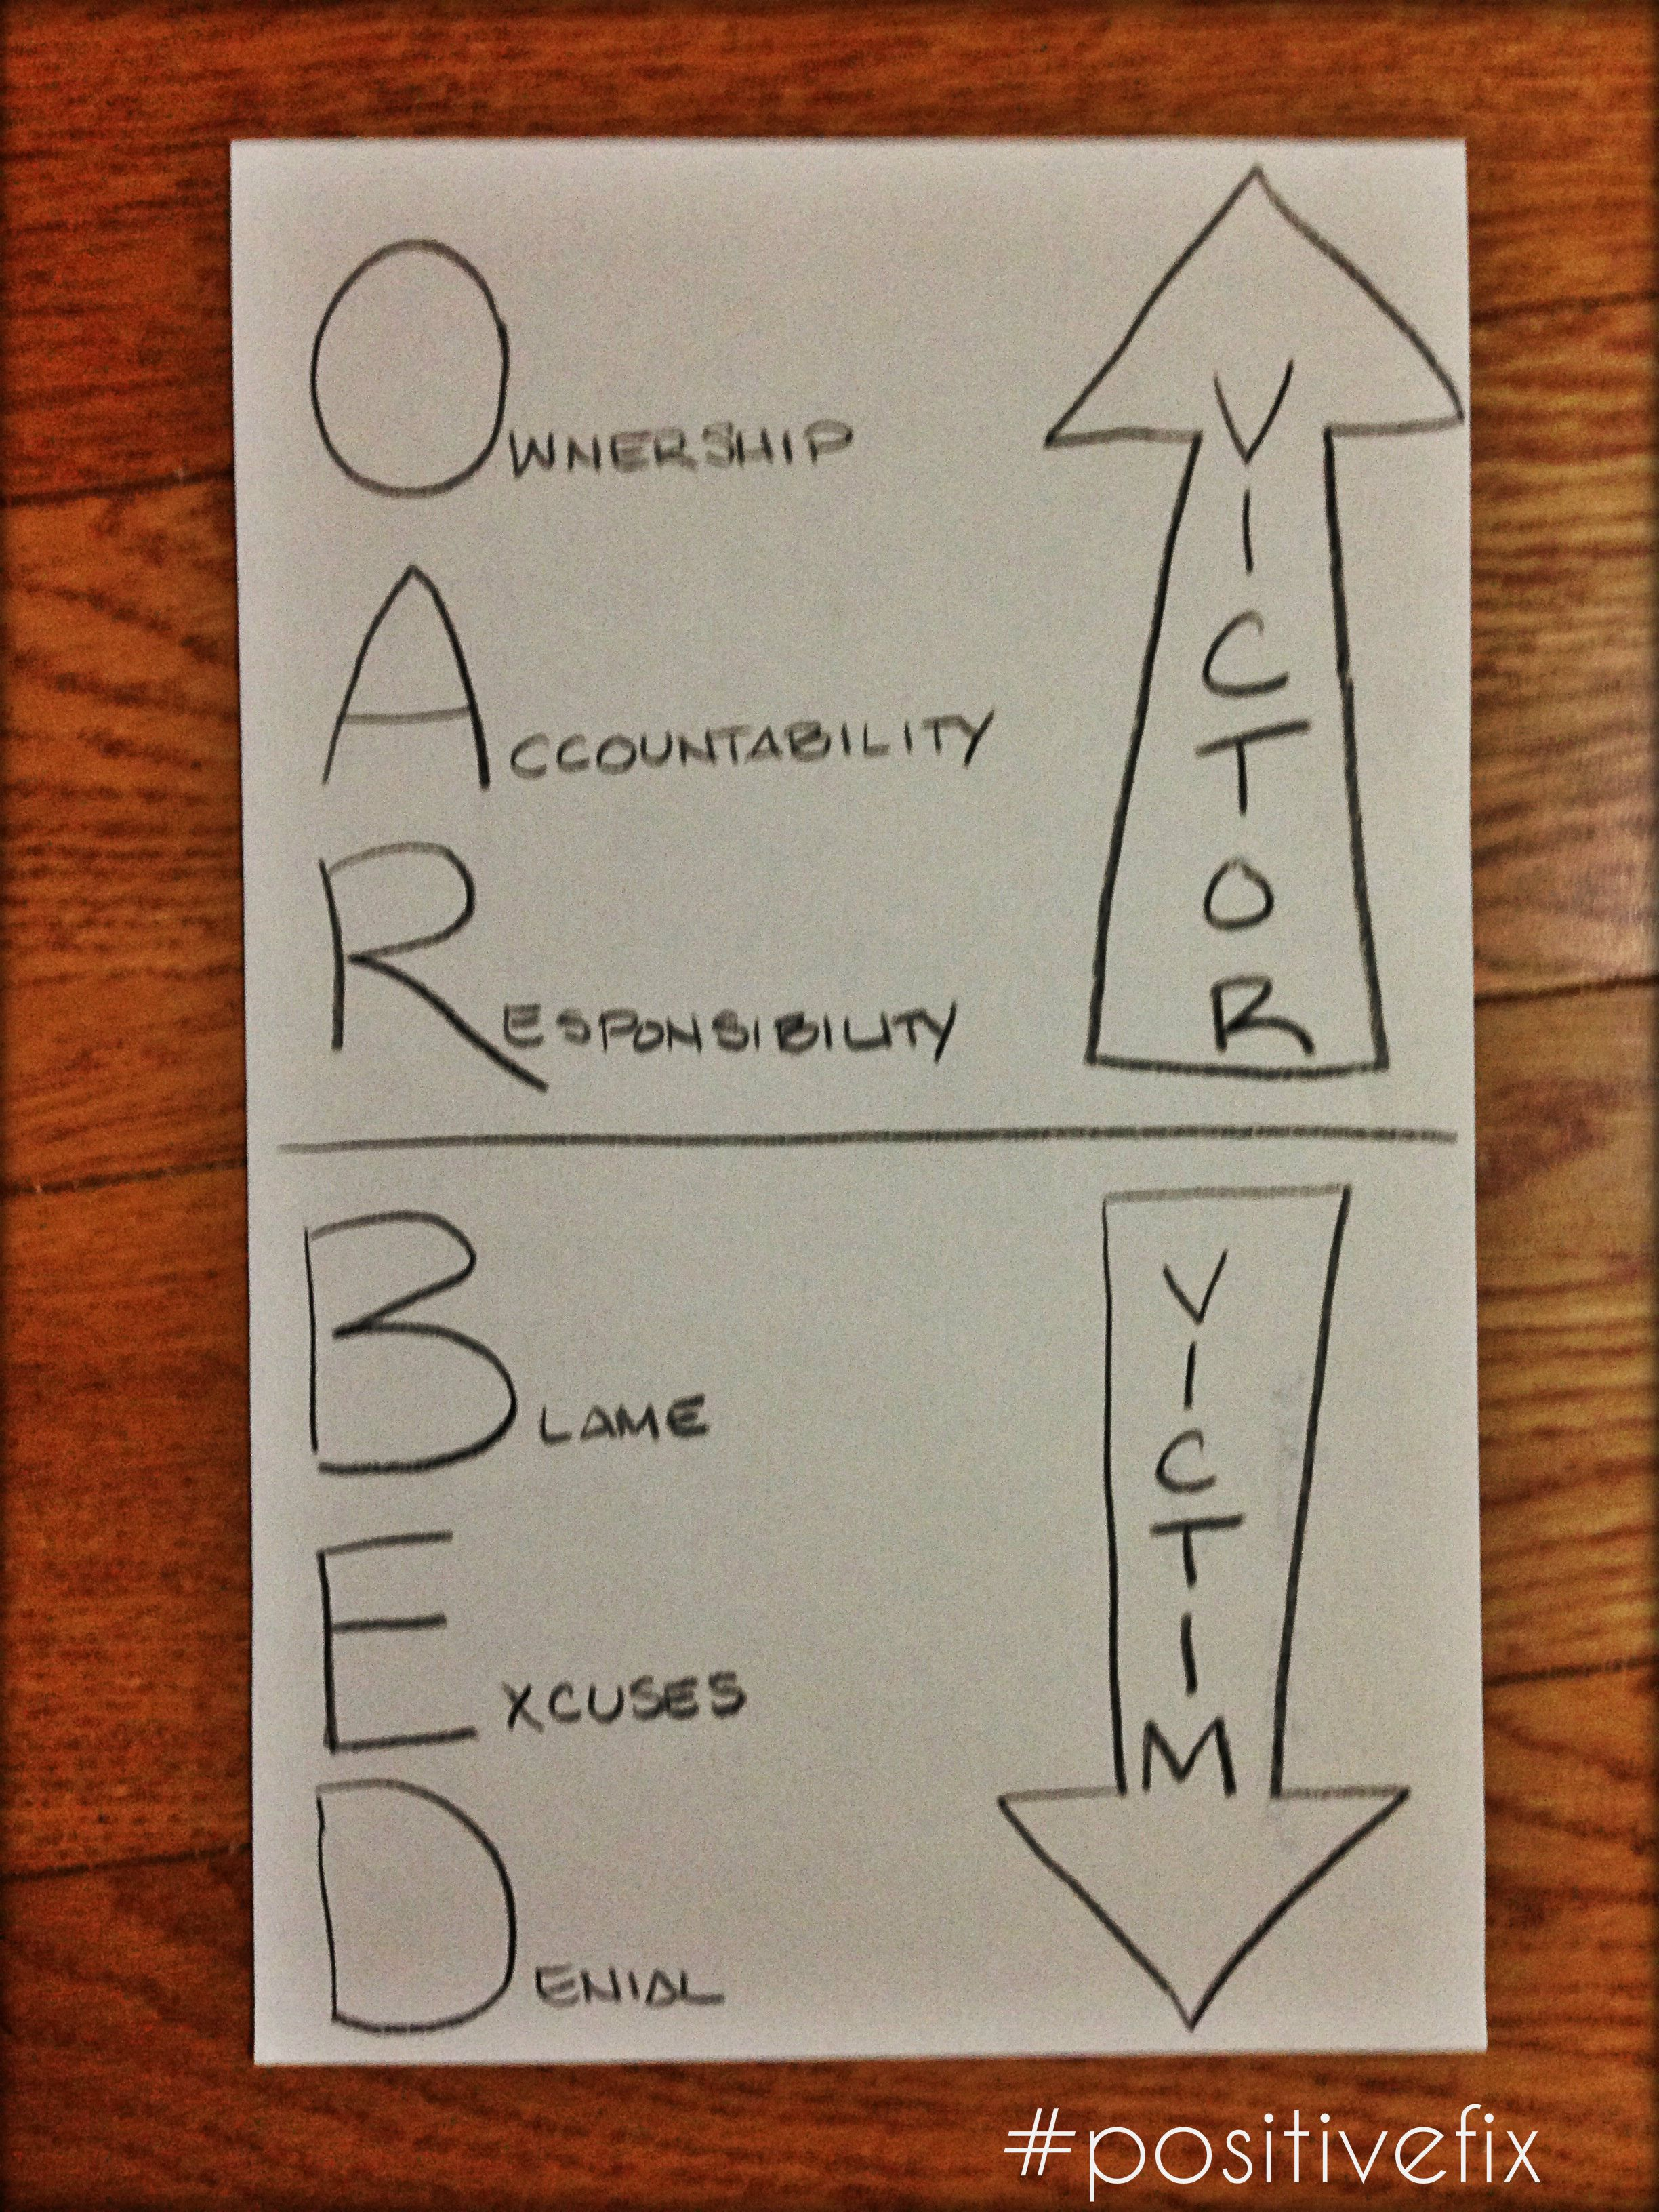 Live Above The Line Ownership Accountability Responsibility Blame Excuses